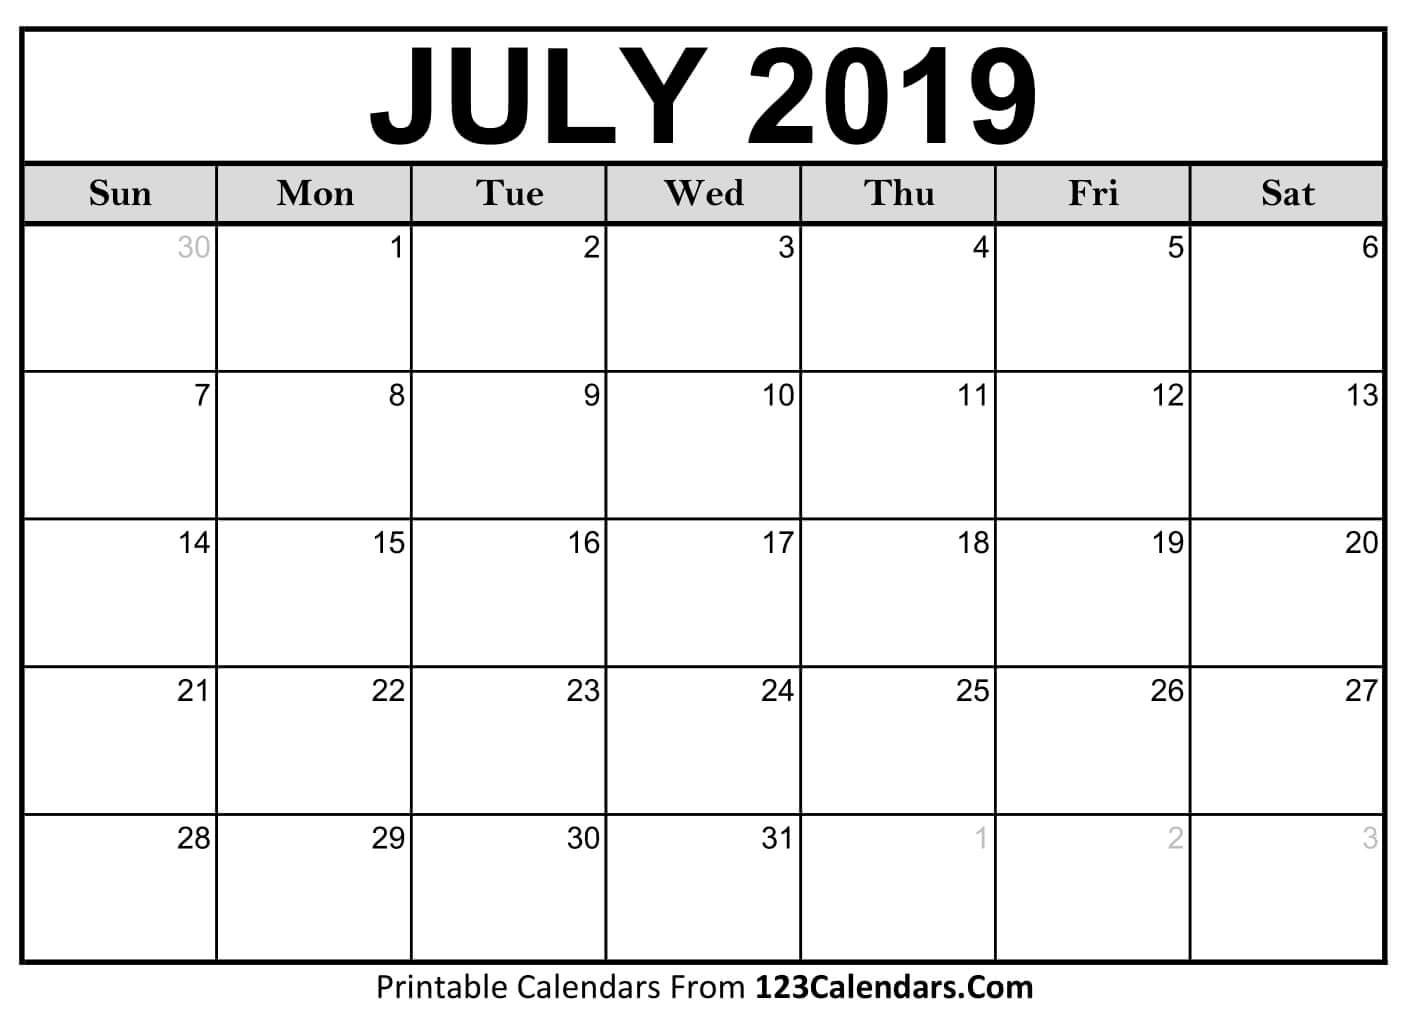 Printable July 2019 Calendar Templates - 123Calendars Calendar Of 2019 July